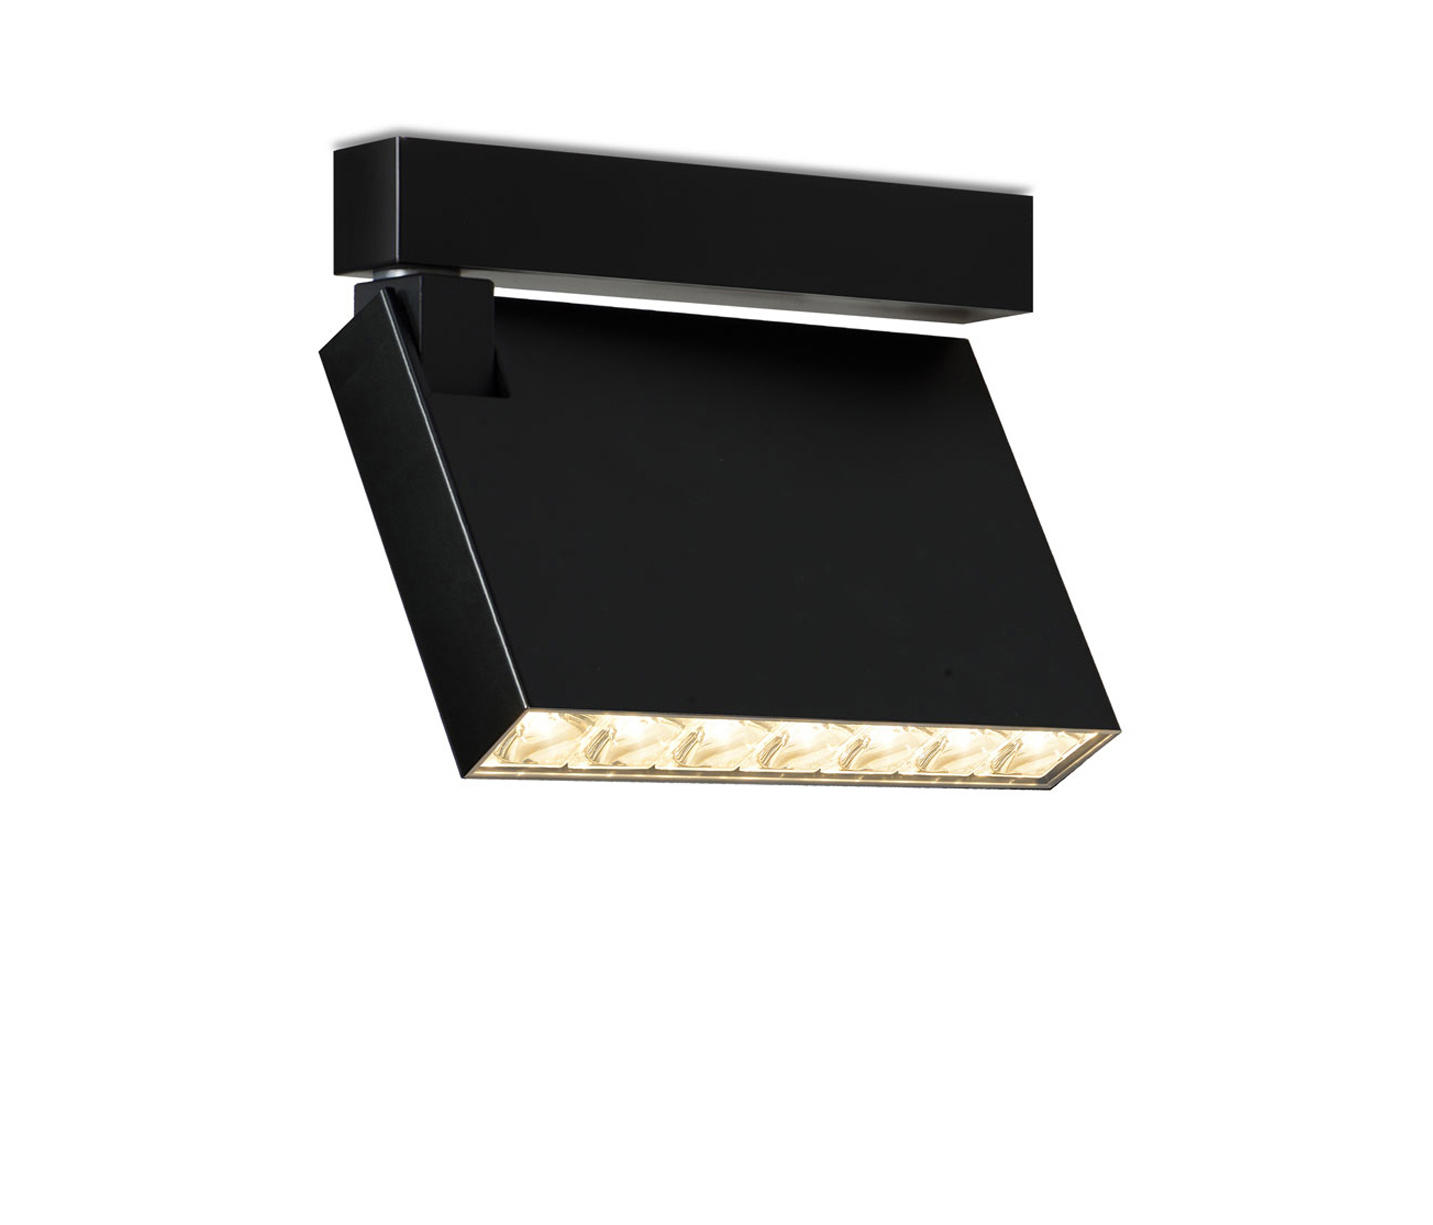 Mawa Design flatboxled fbl 21 ceiling mounted spotlights from mawa design